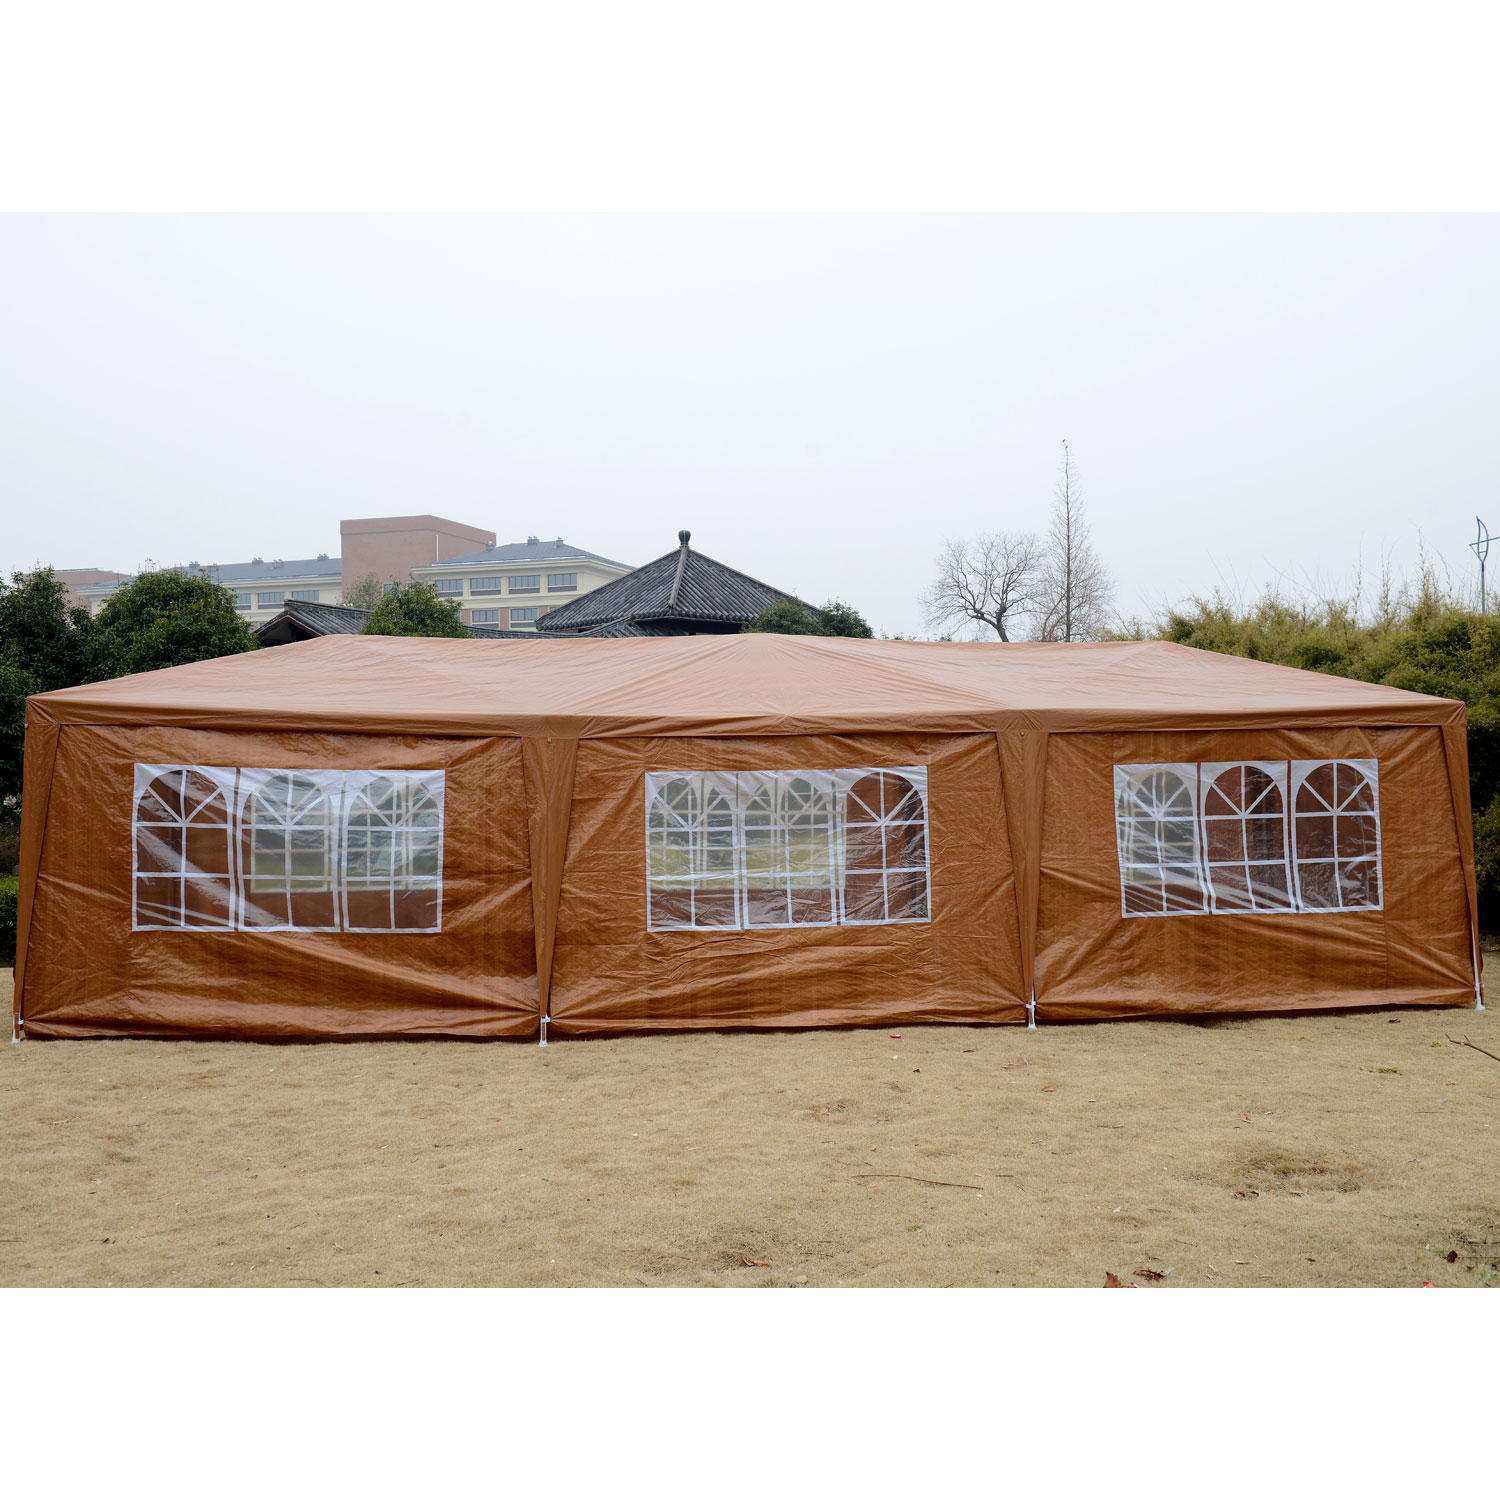 Outunny 10' x 30' Gazebo Canopy Party Tent w/ Removable Side Walls - Coffee